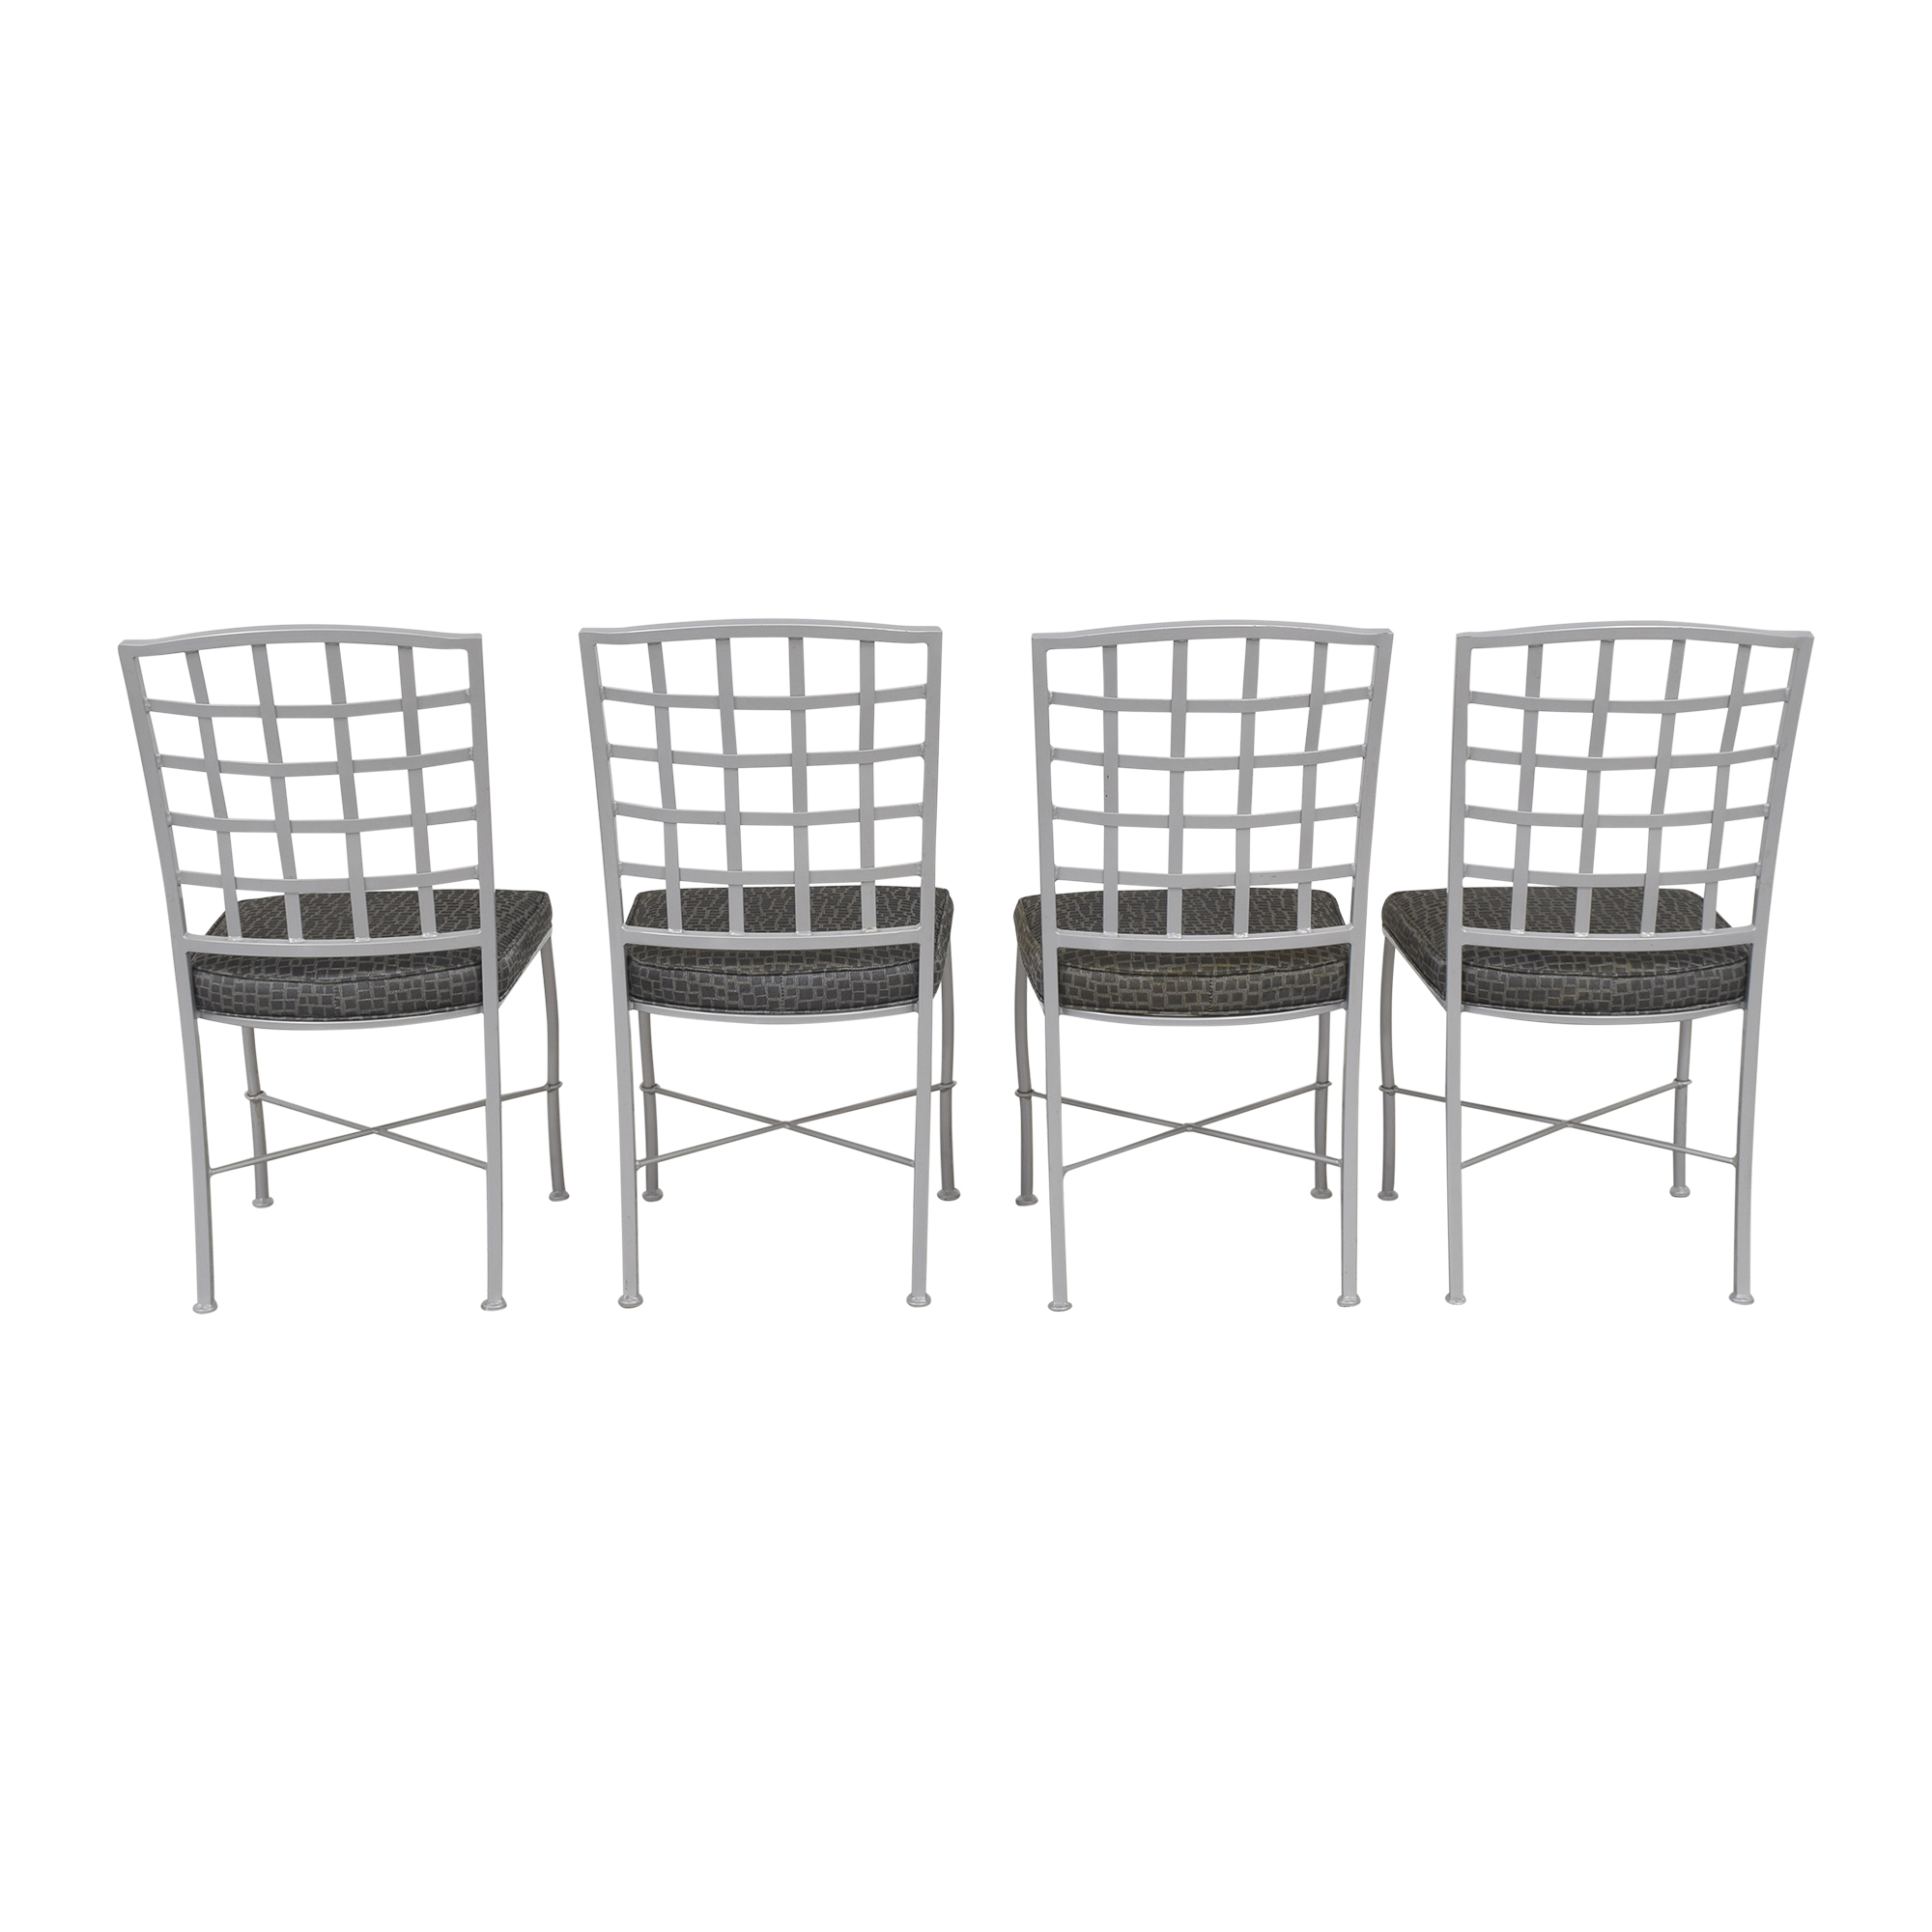 Johnston Casuals Johnston Casuals Lattice Back Dining Chairs pa